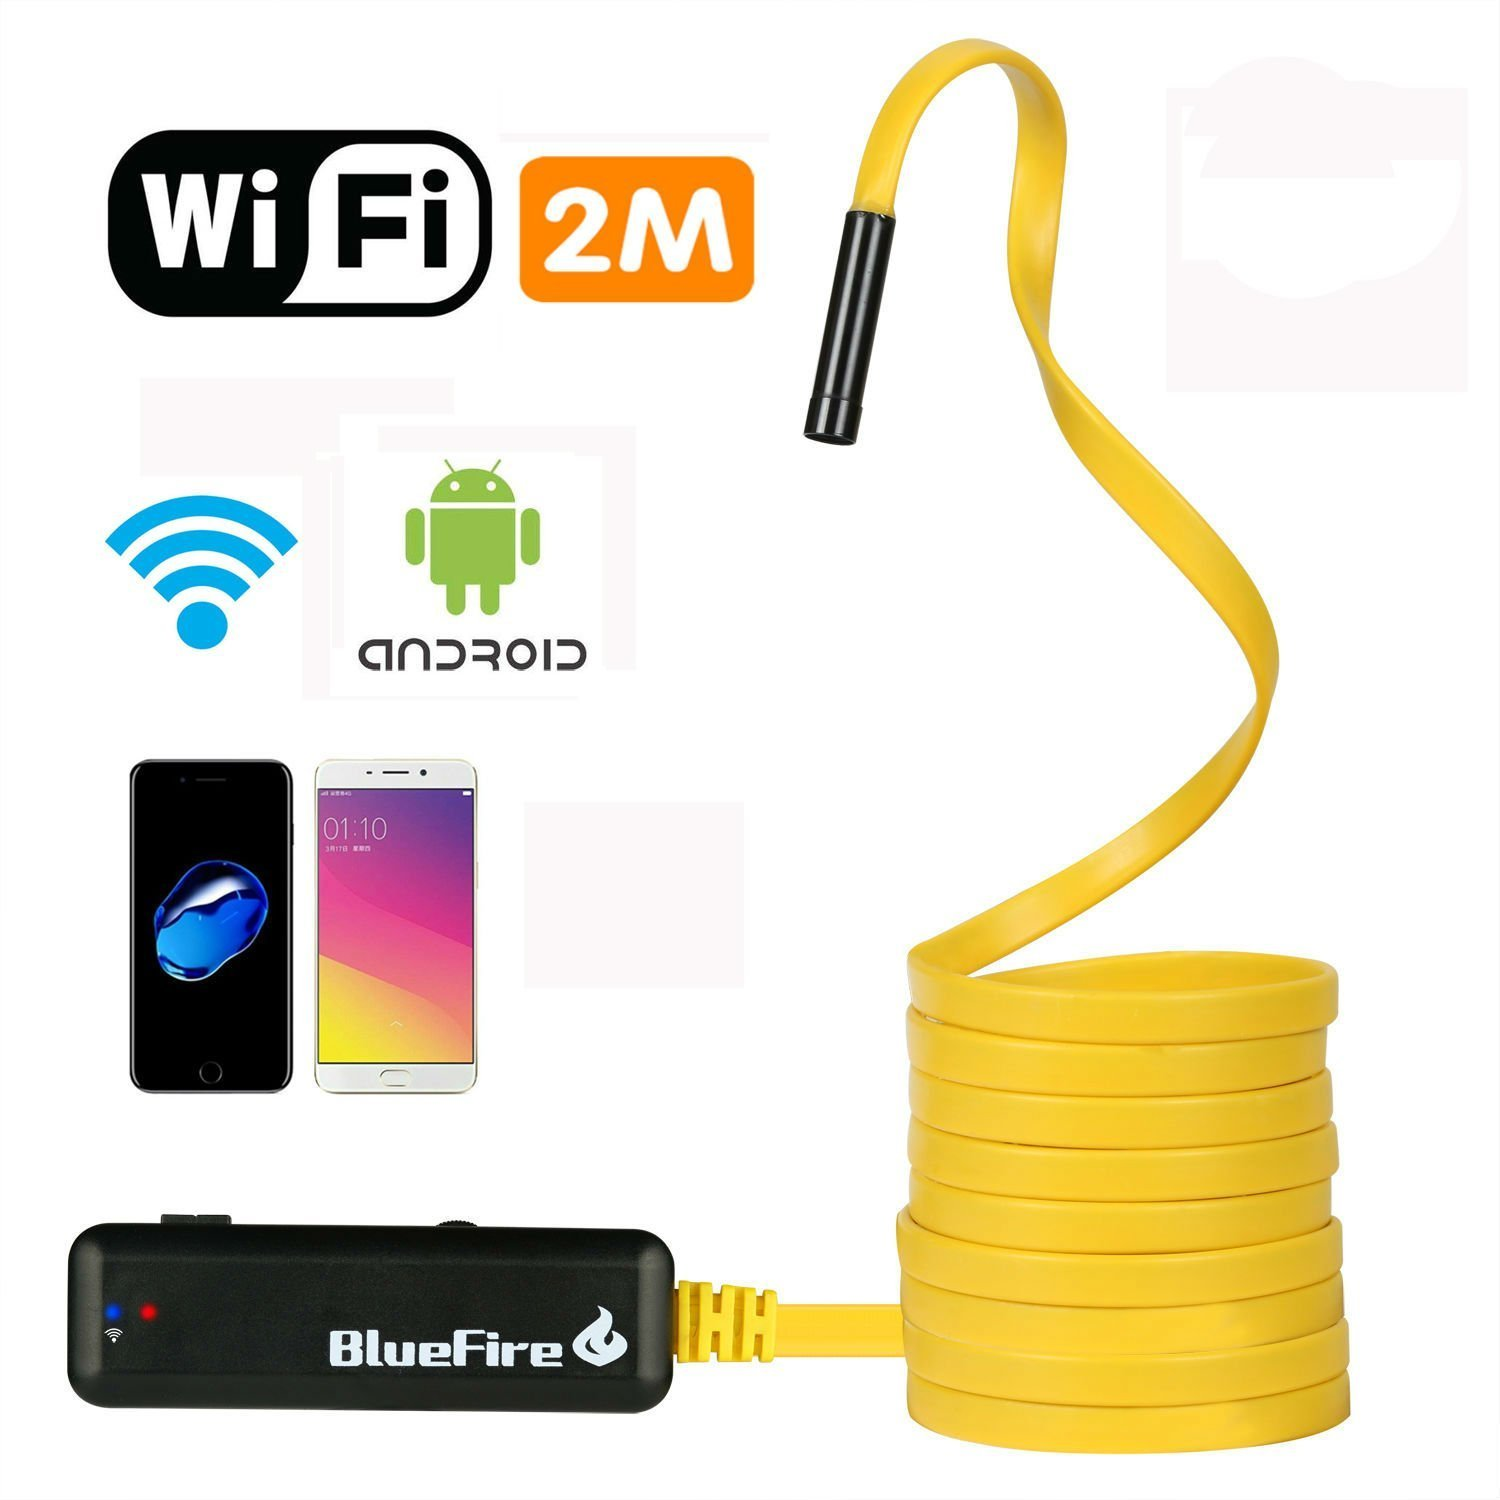 BlueFire Semi-rigid Flexible Wireless Endoscope IP67 Waterproof WiFi Borescope 2 MP HD Resolutions Inspection Camera Snake Camera for Android and iOS Smartphone, iPhone, Samsung, iPad, Tablet (6.6FT)